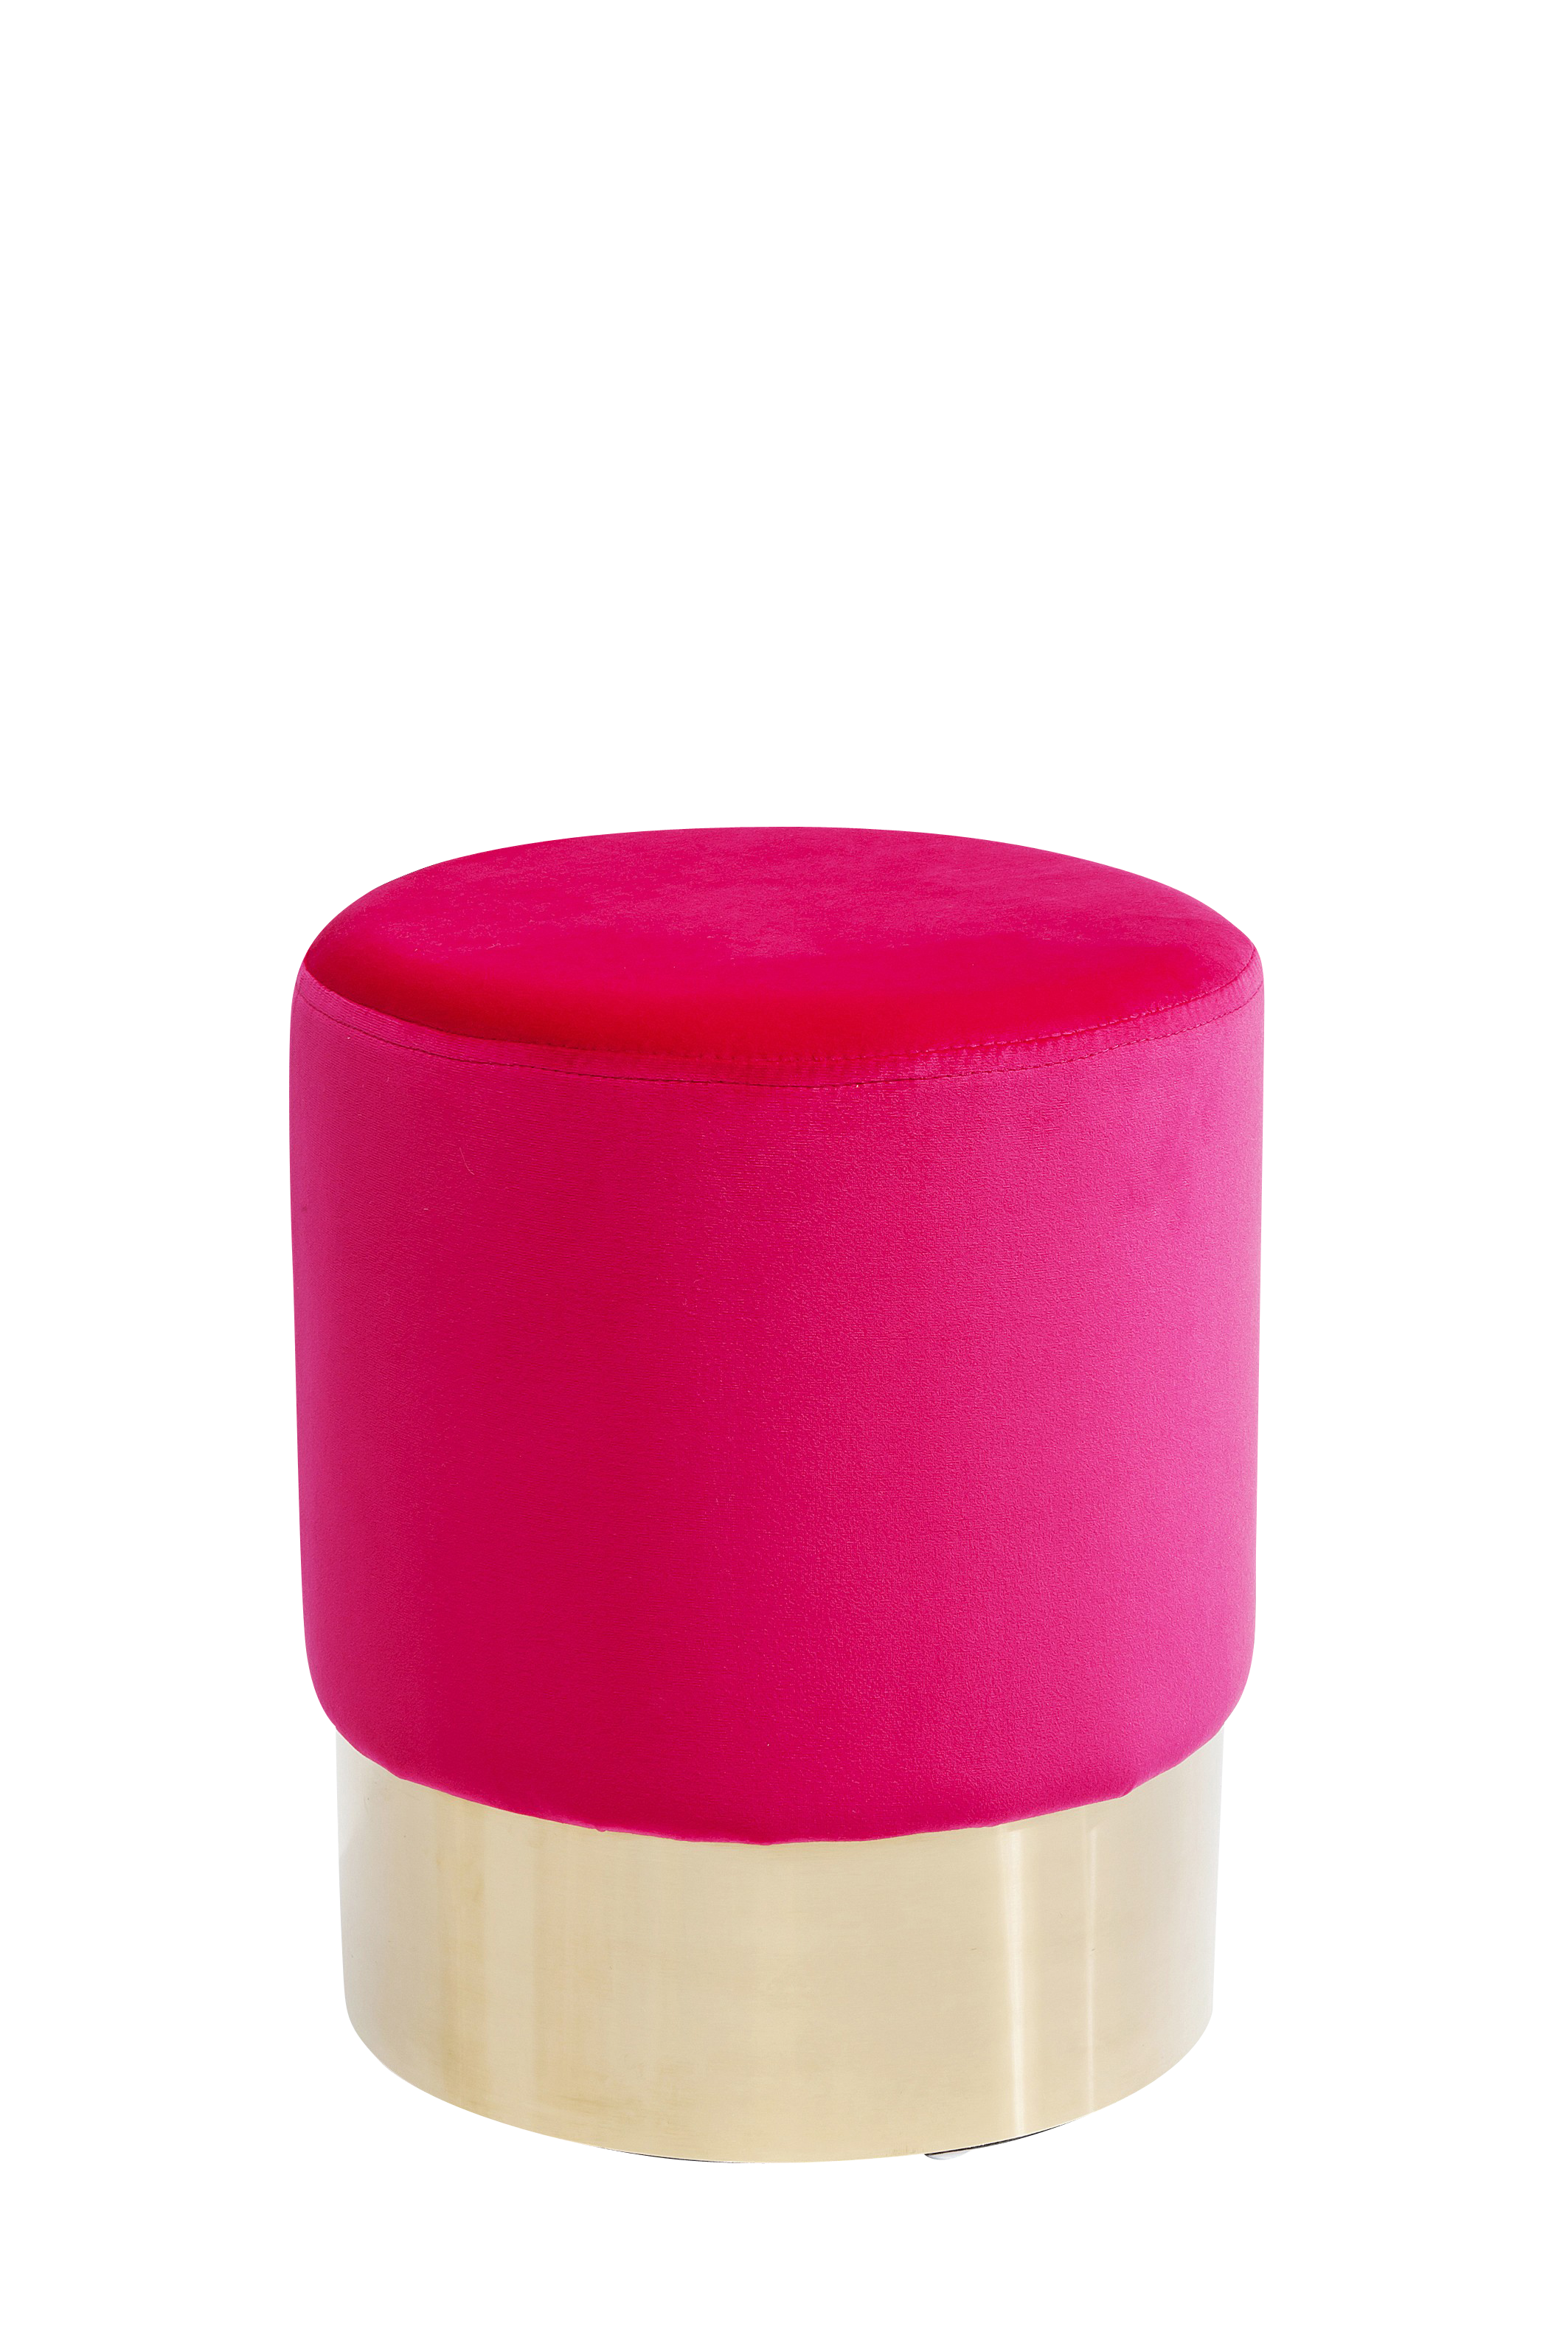 Hocker Cherry Pink Brass Ø35cm